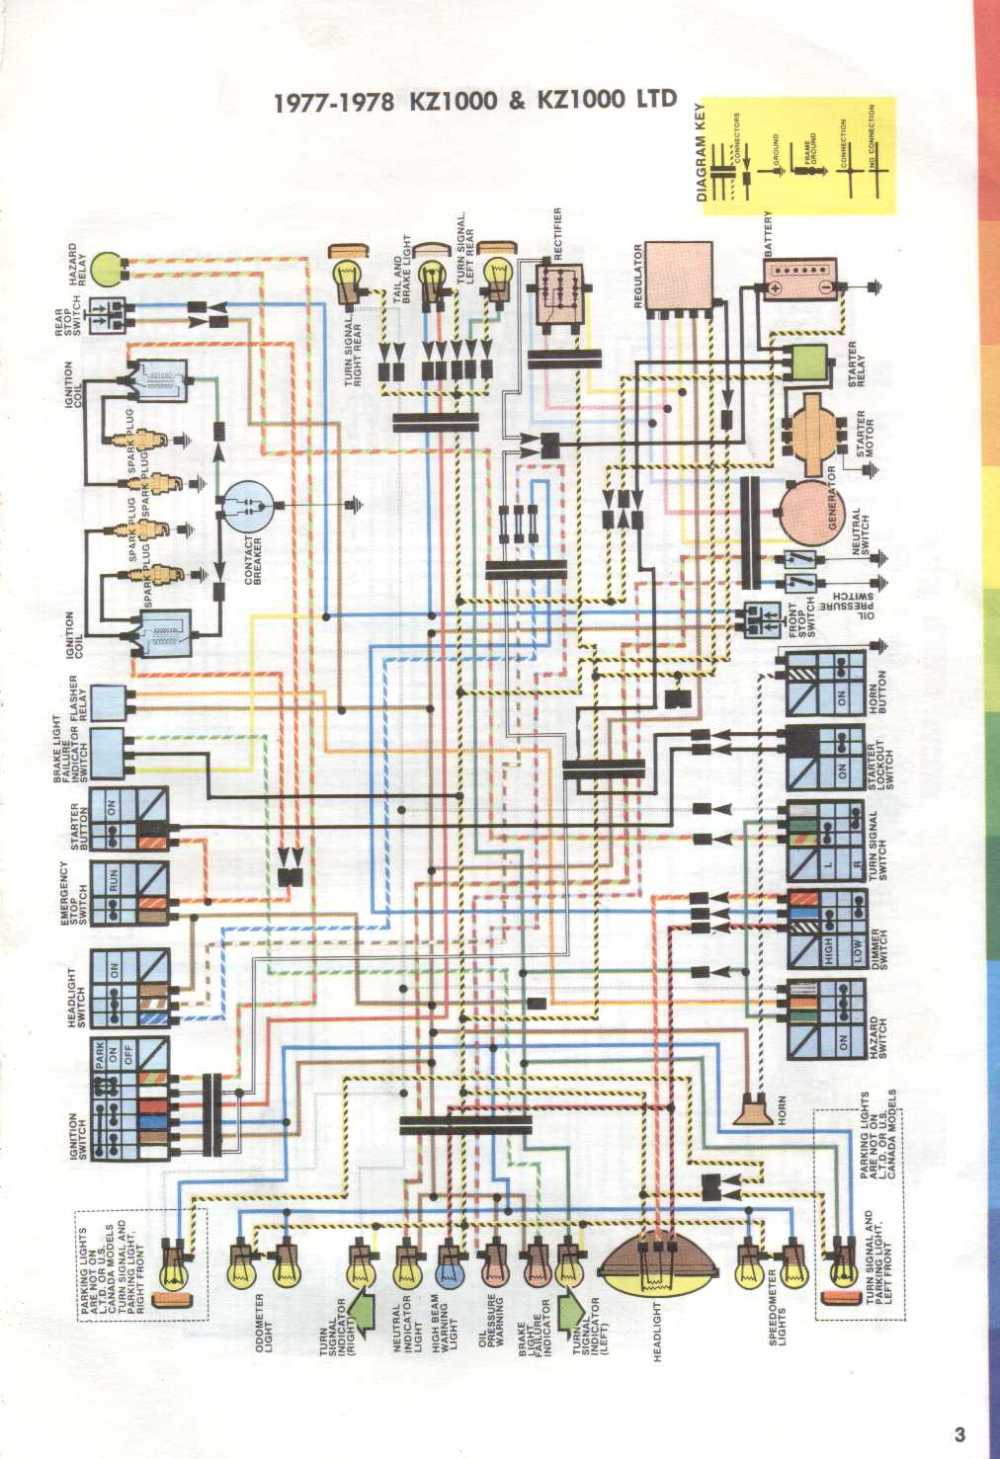 medium resolution of wiring diagram for 1977 1978 kawasaki kz1000 and kz1000ltd evan kawasaki wiring diagram bayou 300 kawasaki wire diagram